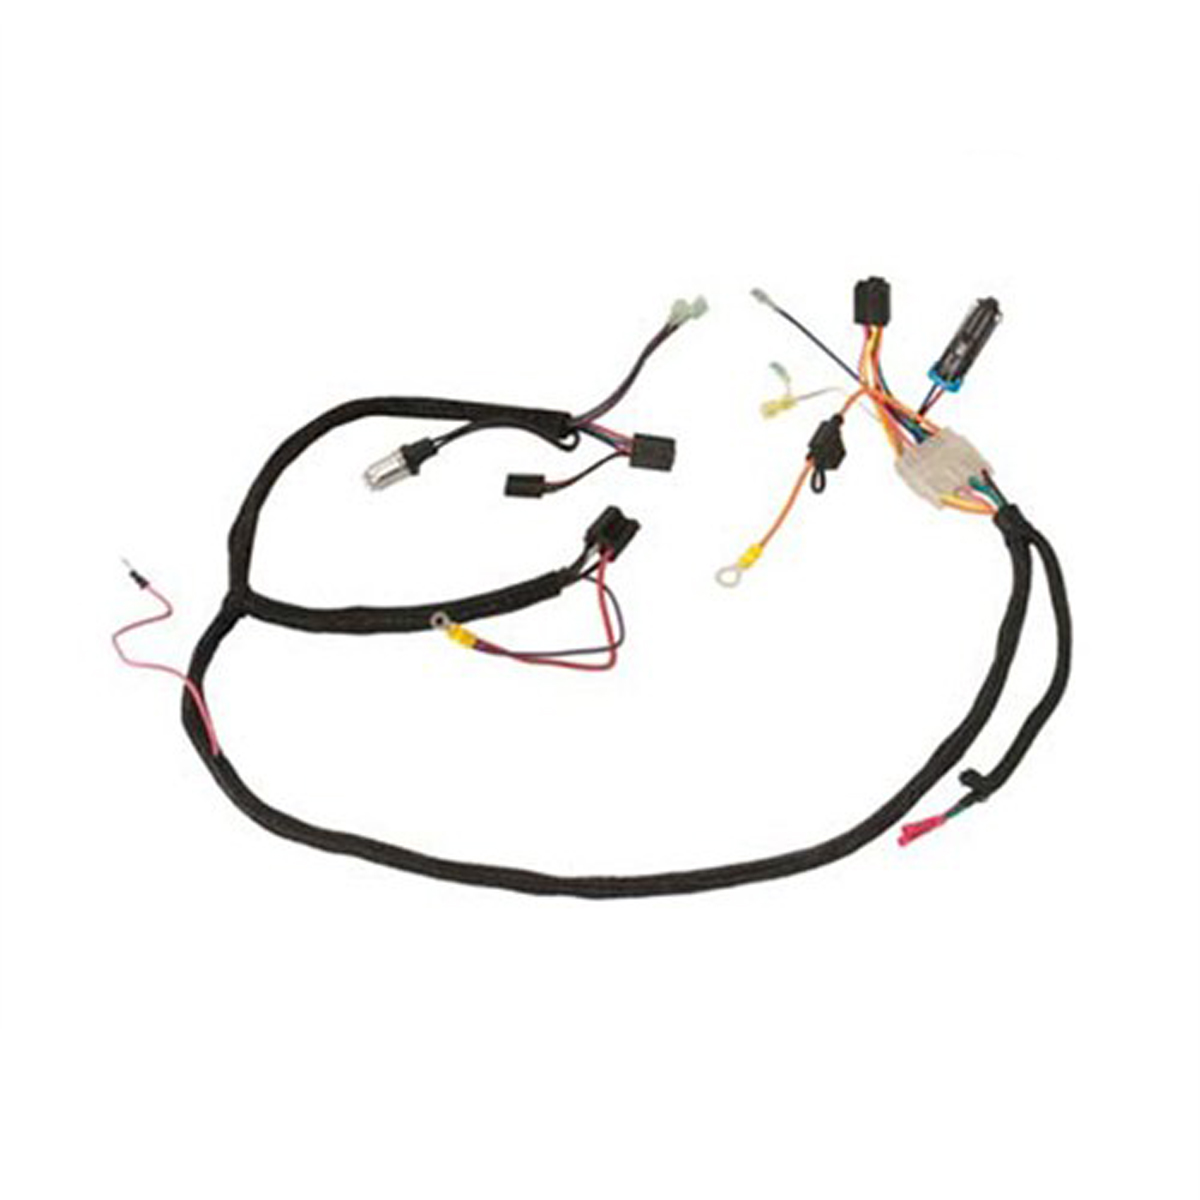 500002 500002 dixie chopper kohler efi wiring harness mini chopper wiring harness at et-consult.org